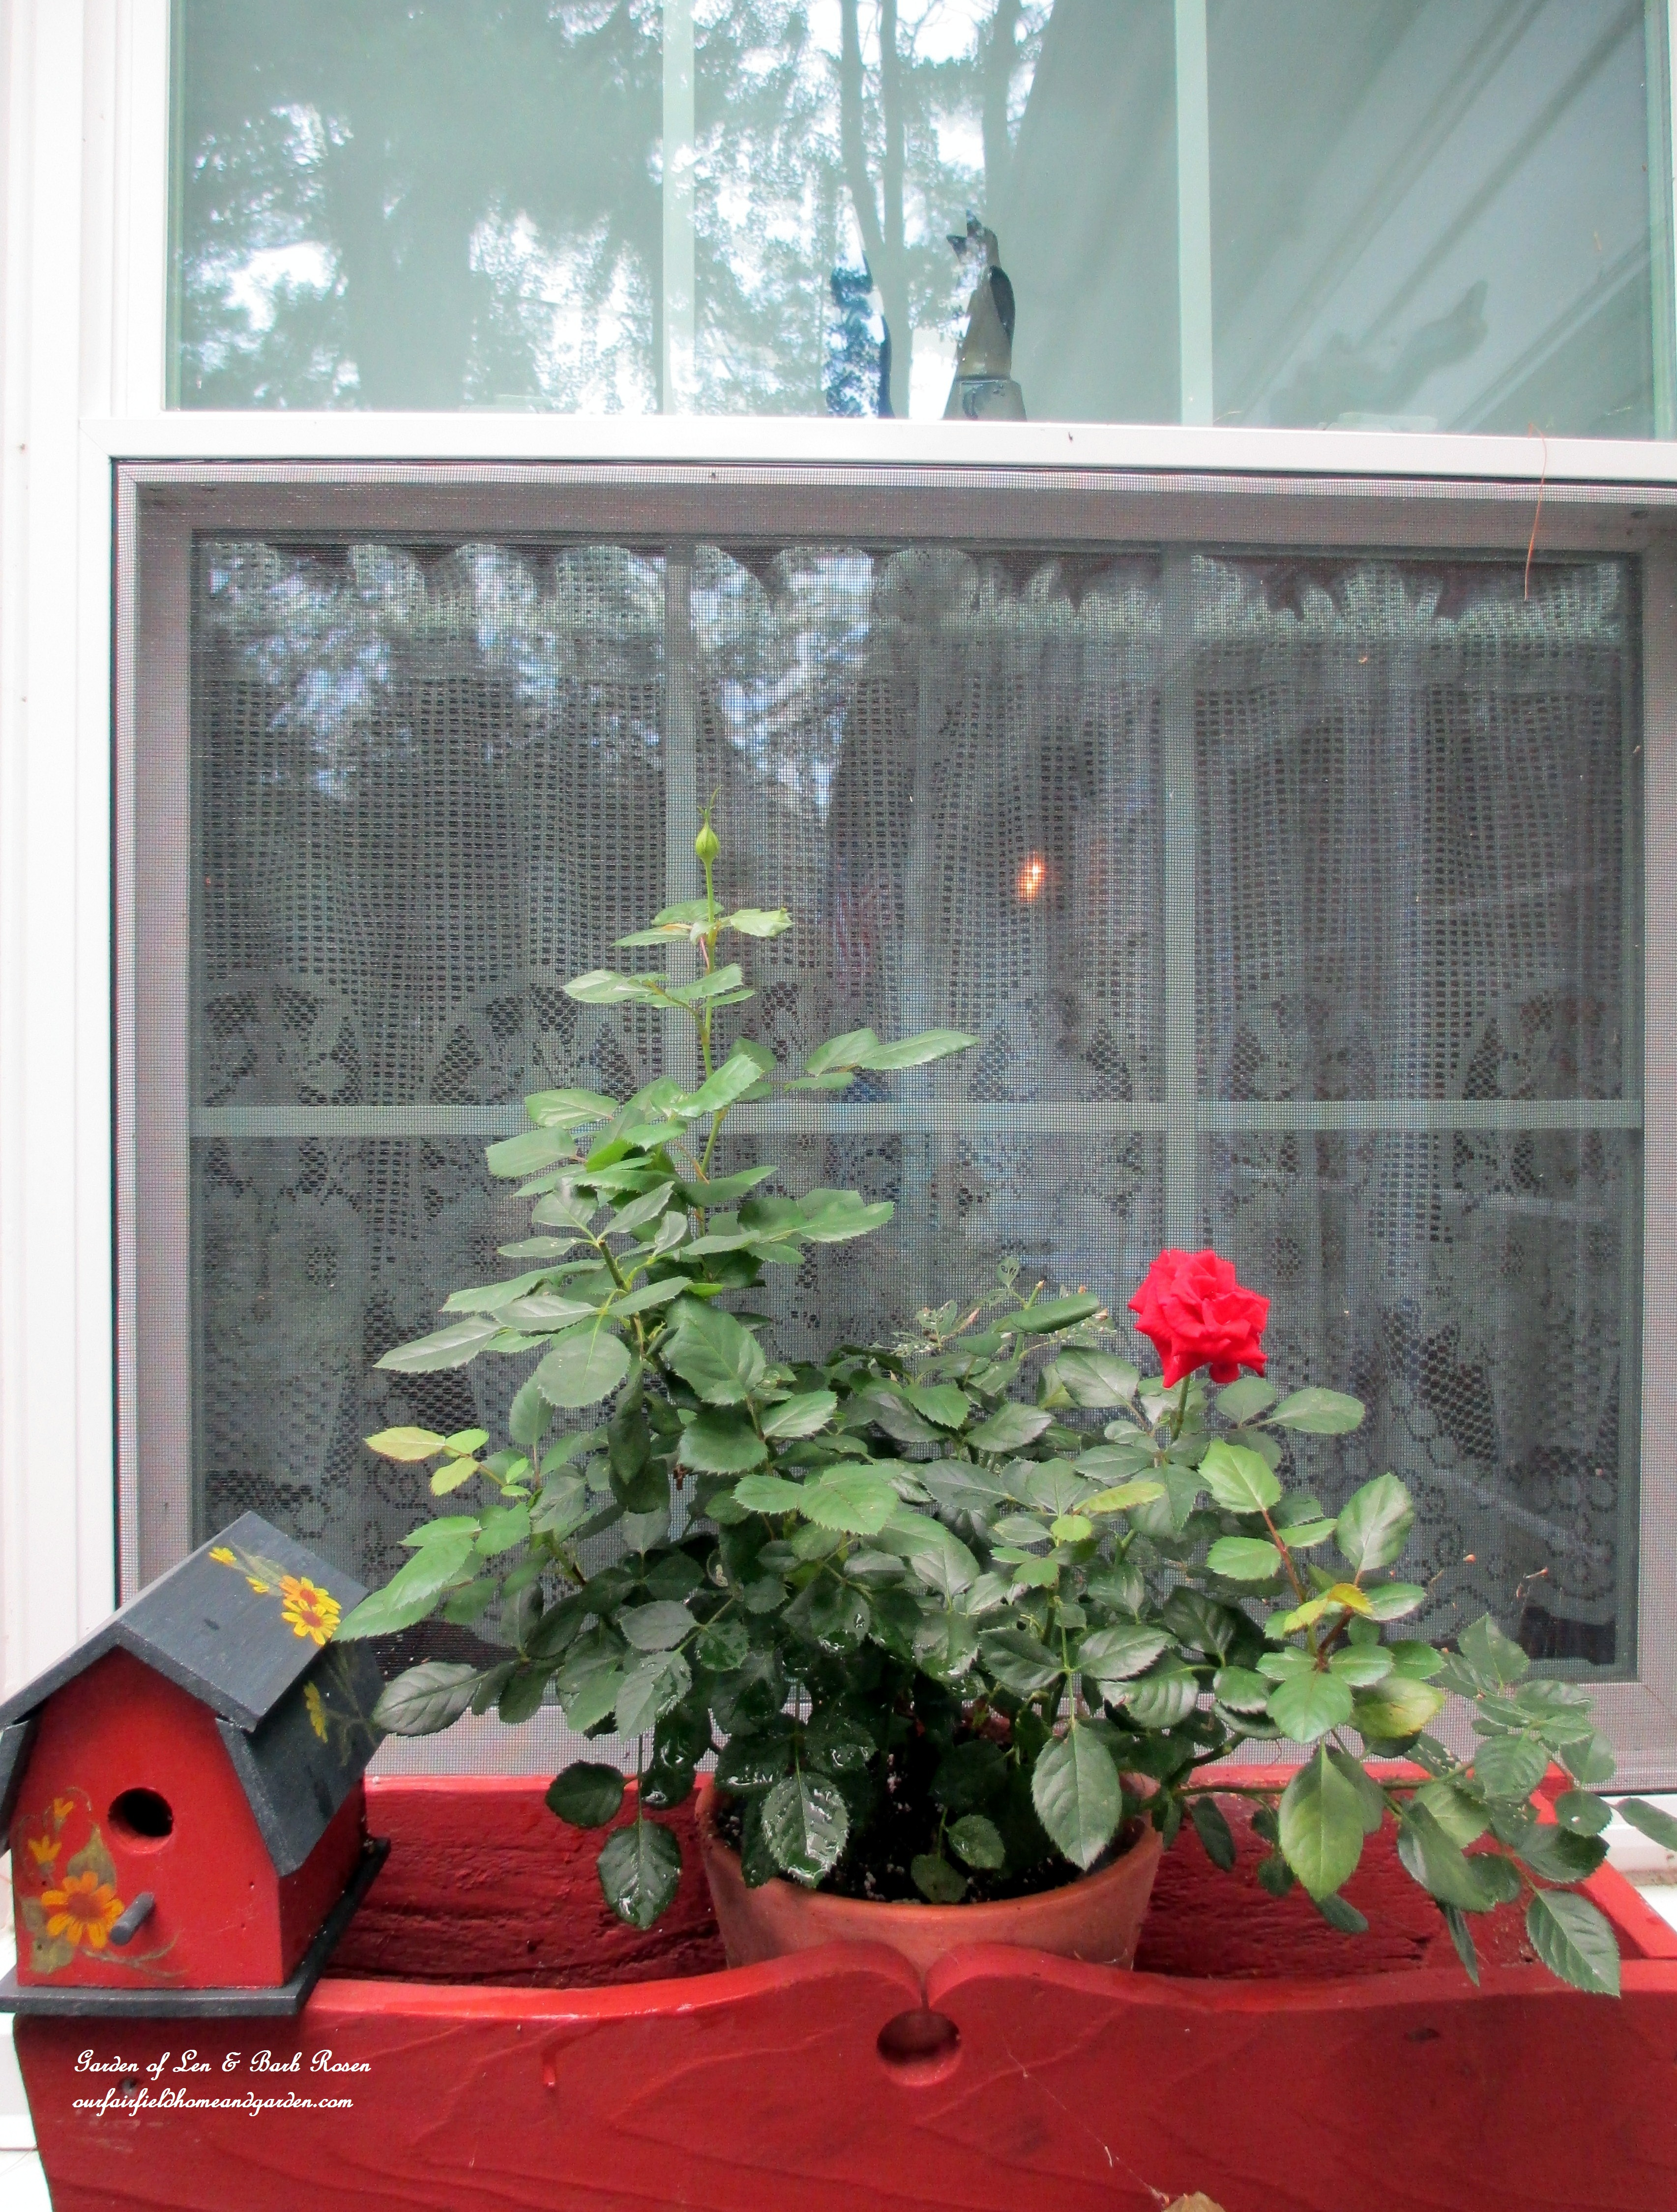 Walk In Garden Box: Flowers Going To Seed And Colors Muting: Early September